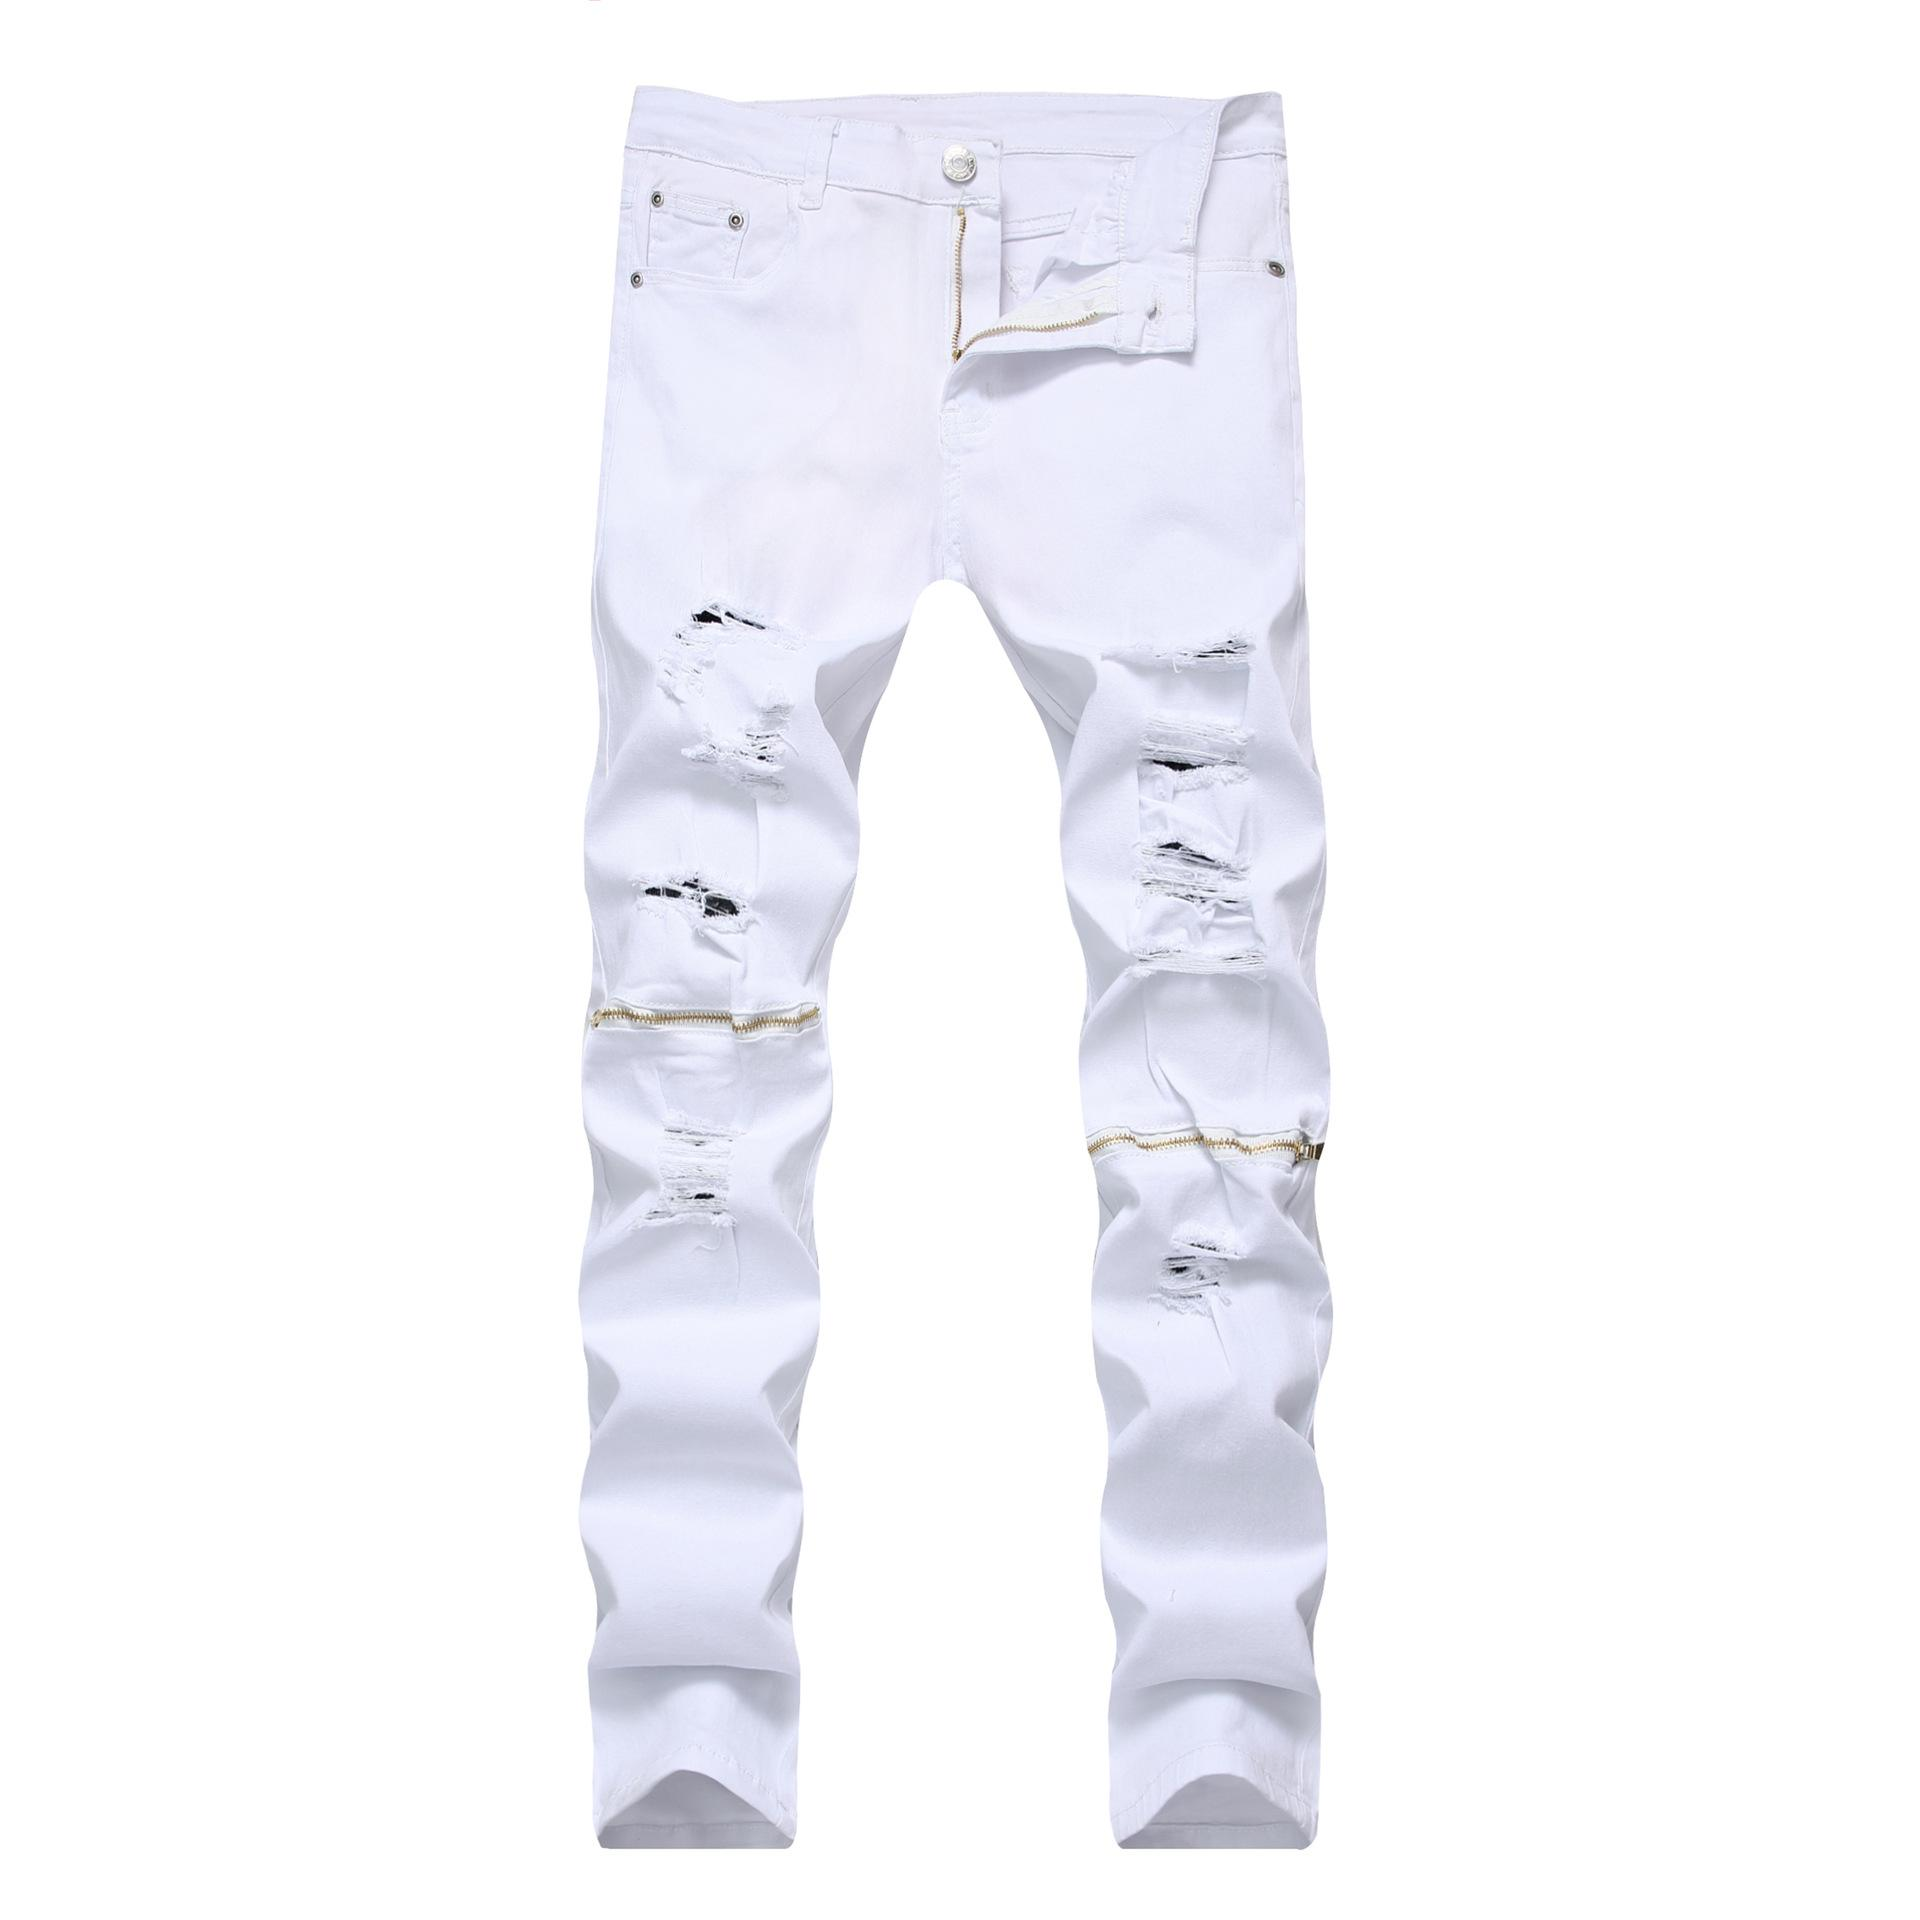 ddfbafdc8b197 2019 Fashion Mens Jeans Brands Straight Slim Fit Biker Jeans Pants  Distressed Skinny Ripped Destroyed Denim Washed Trousers Black From  Easyshoppingstore, ...